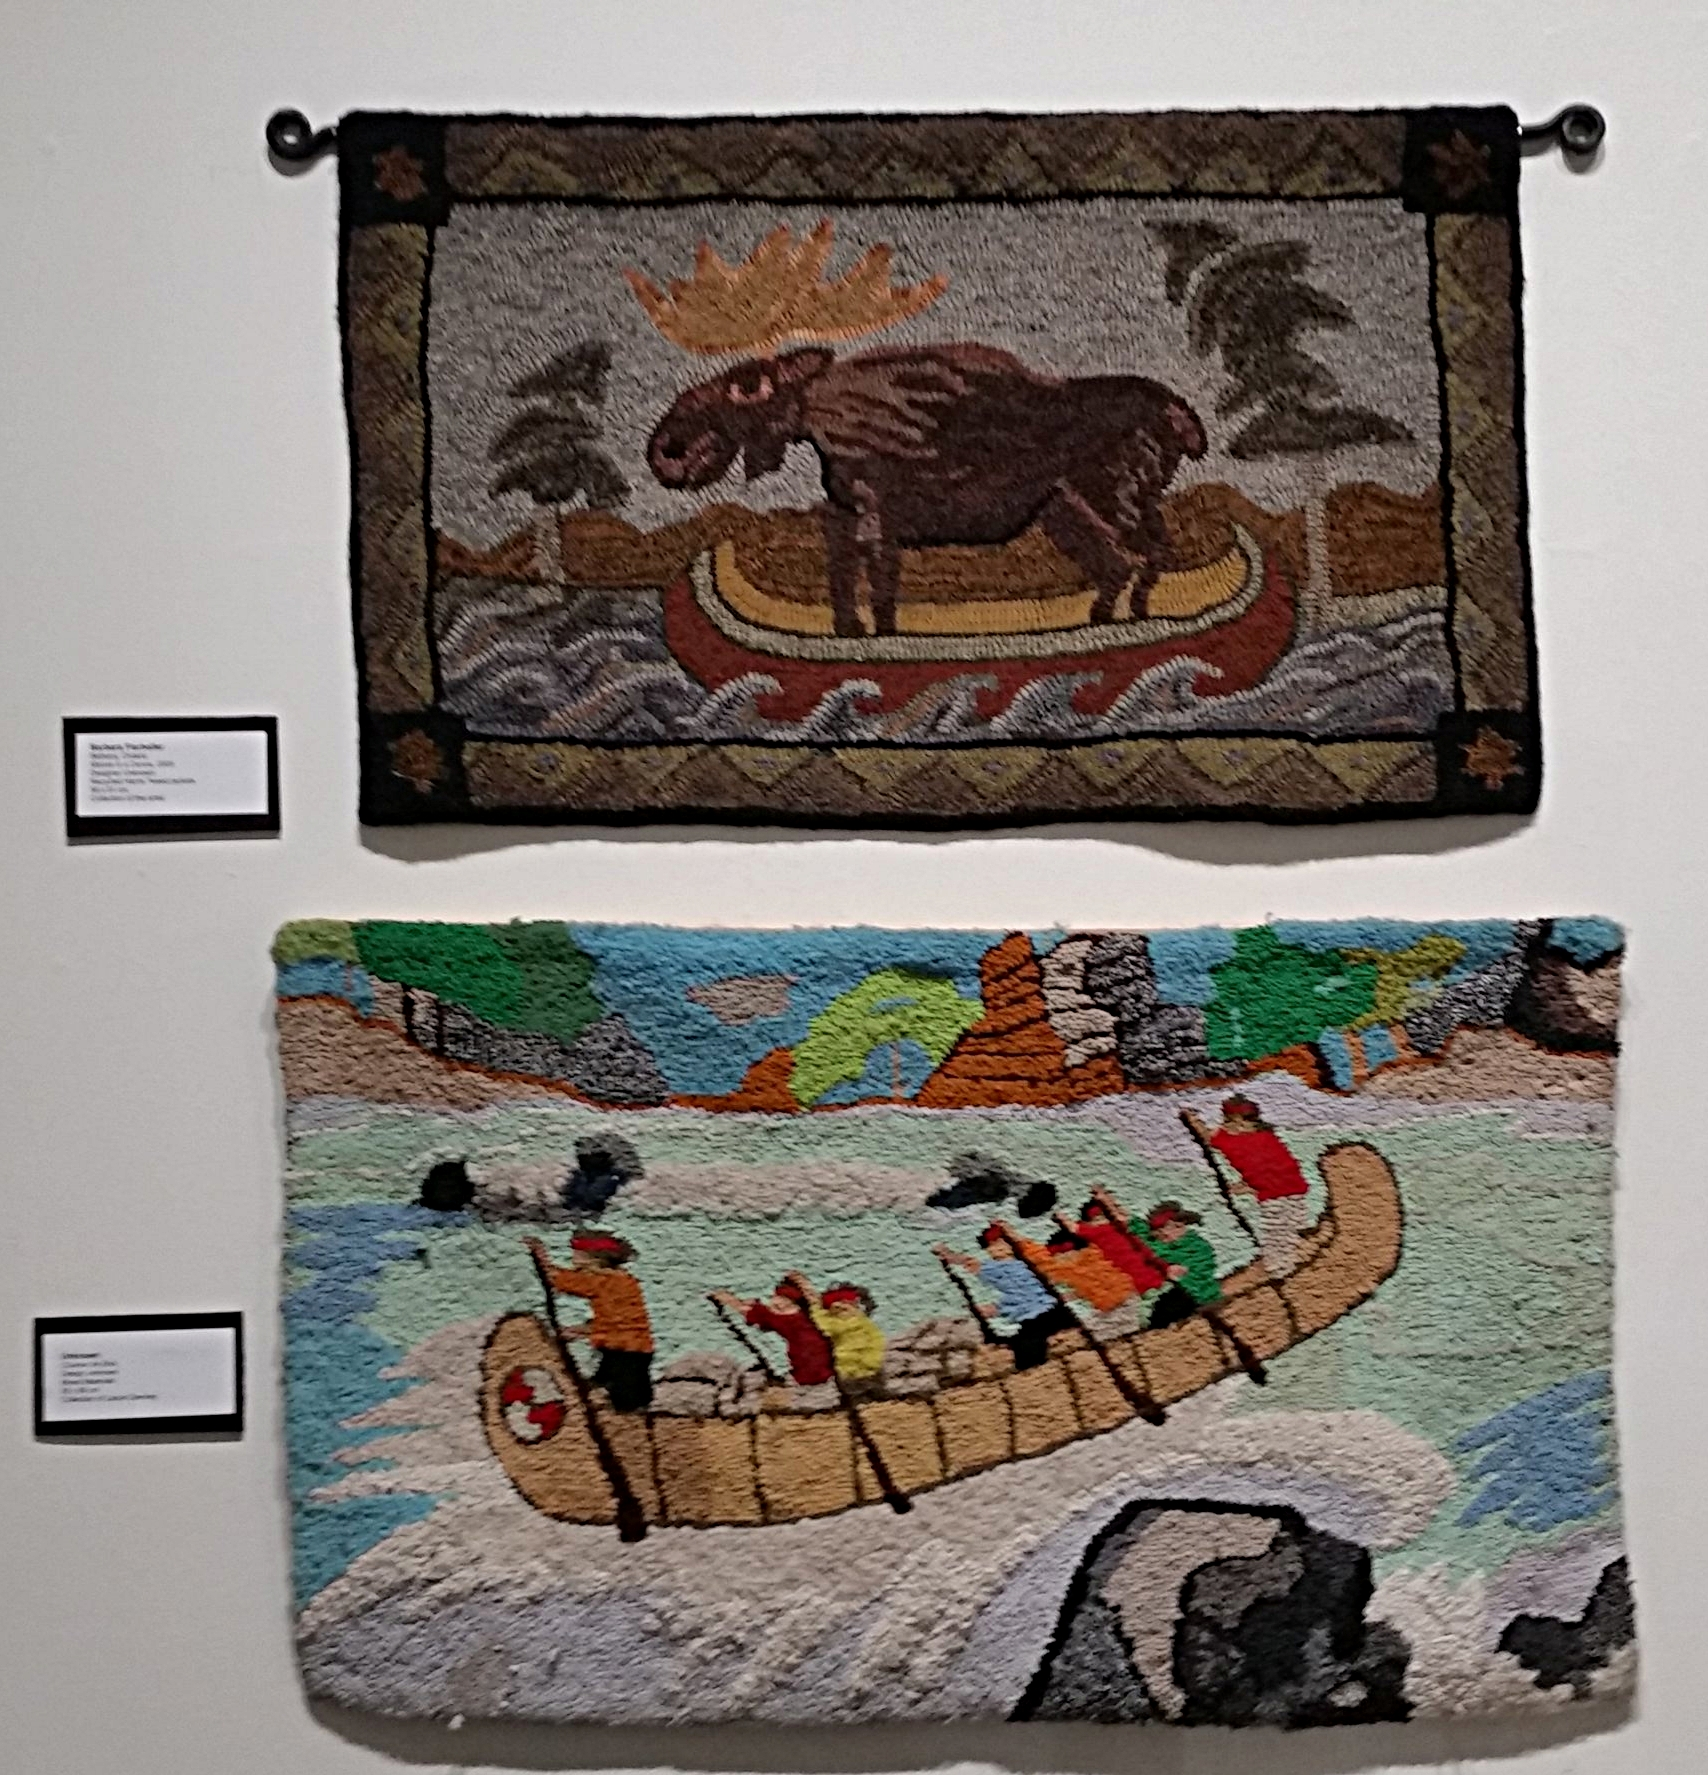 Some of the modern rugs on display.  Top:  Moose in a Canoe, Barbara Fierheller. From the collection of the artist.  Bottom: Coureur de Bois.  Artist unknown. From the collection of Laurie Deviney.